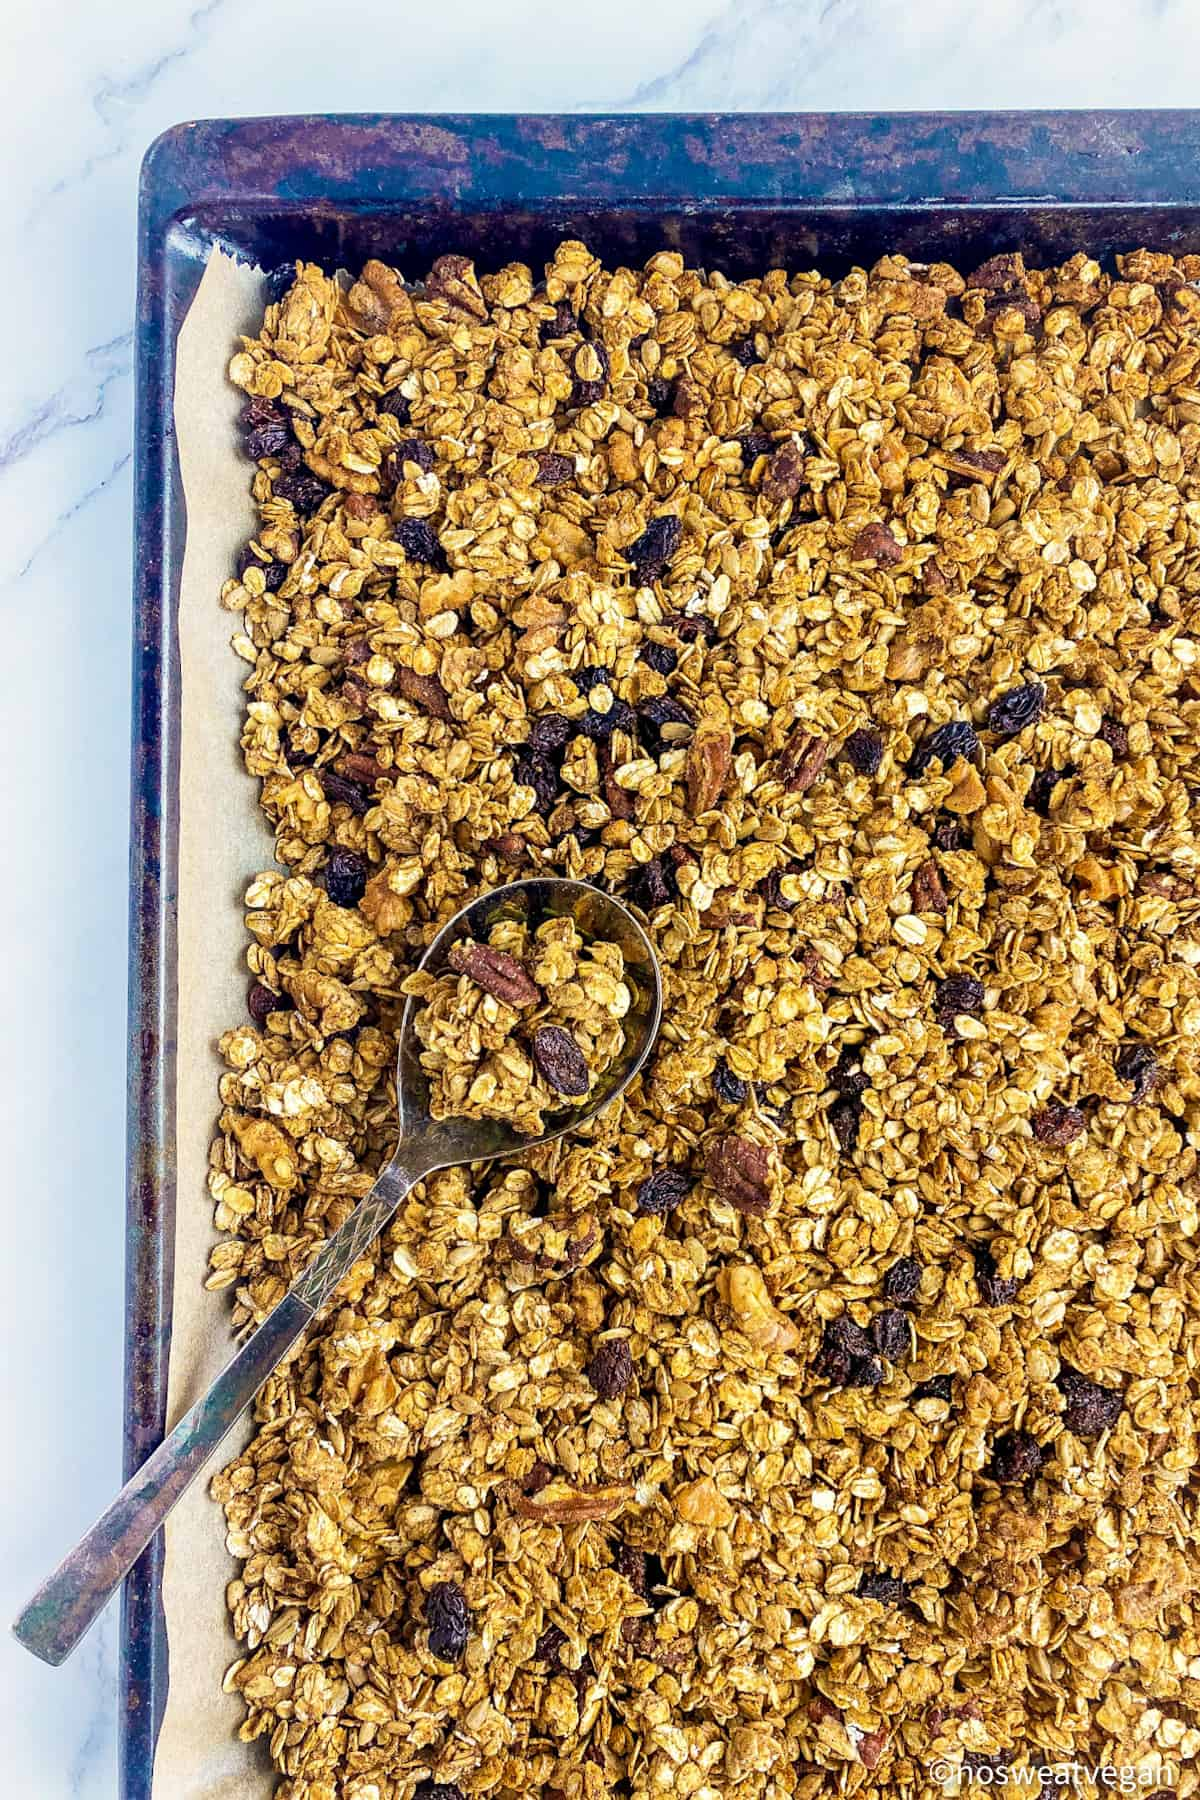 let the granola cool completely before serving